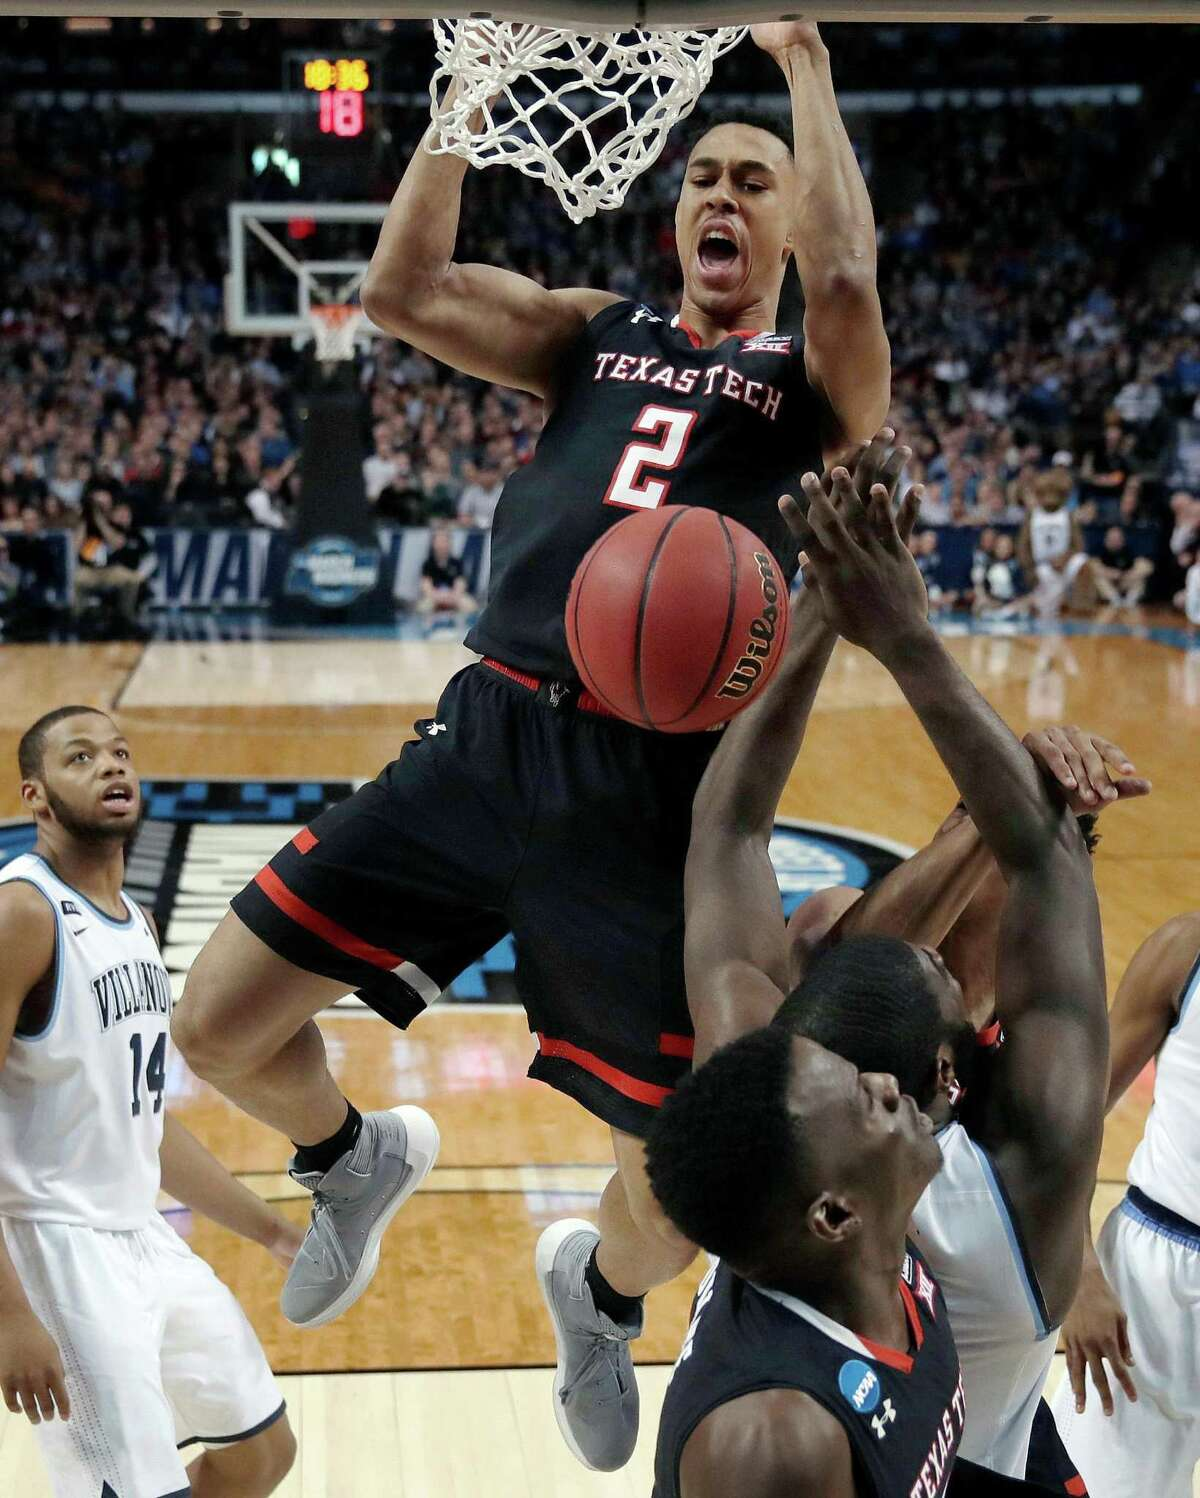 Zhaire Smith Age: 18 Position: SG Size: 6-5, 195 2017-18: Texas TechFun fact: Smith is represented by Roc Nation Sports' Roger Montgomery, who also represents the Spurs' Rudy Gay.